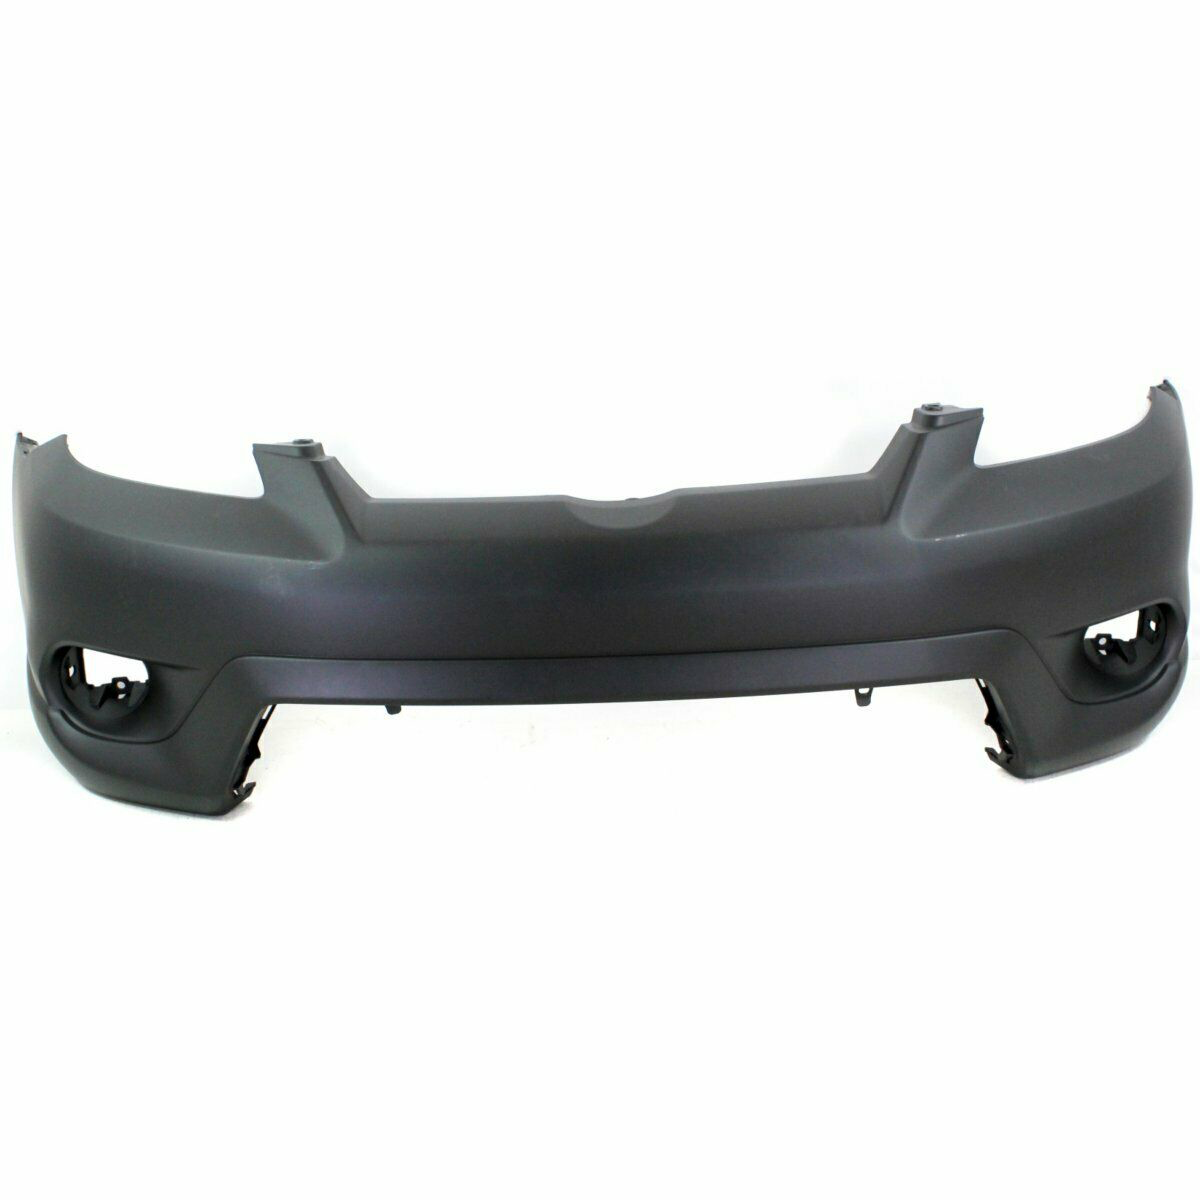 2005-2008 Toyota Matrix XR,XRS Front Bumper Painted to Match